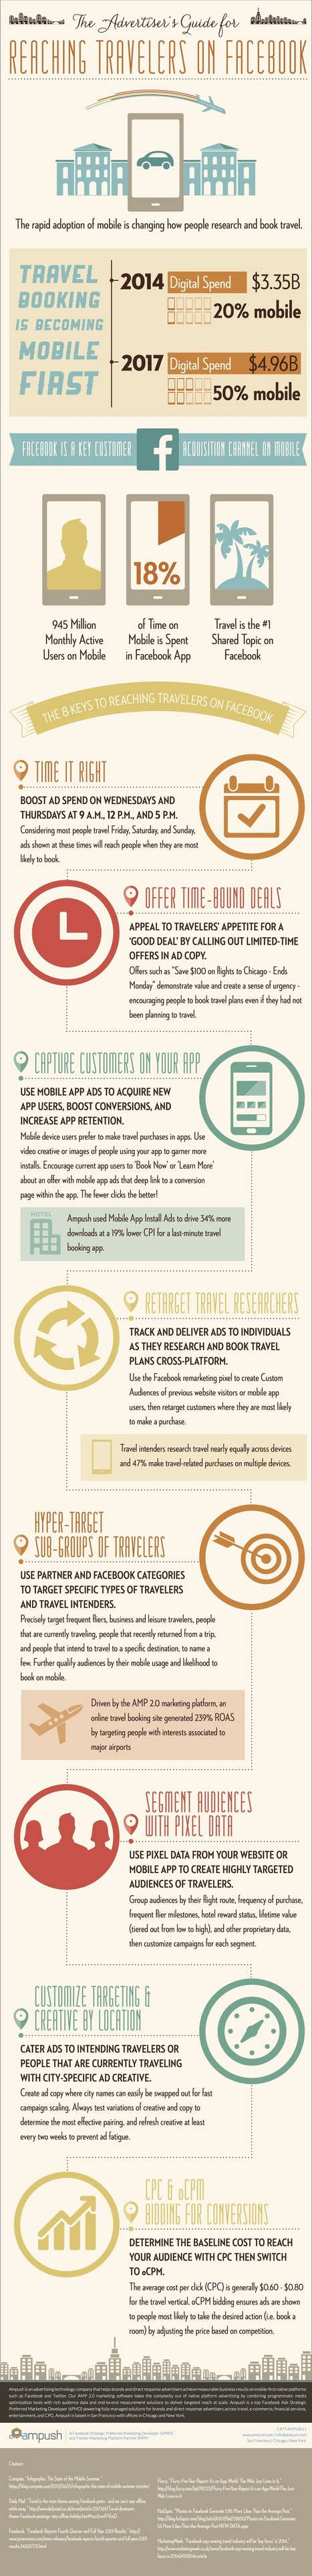 #INFOGRAPHIC  Reaching #Travelers on #Facebook #turismo #socialmedia #sapevatelo | ALBERTO CORRERA - QUADRI E DIRIGENTI TURISMO IN ITALIA | Scoop.it